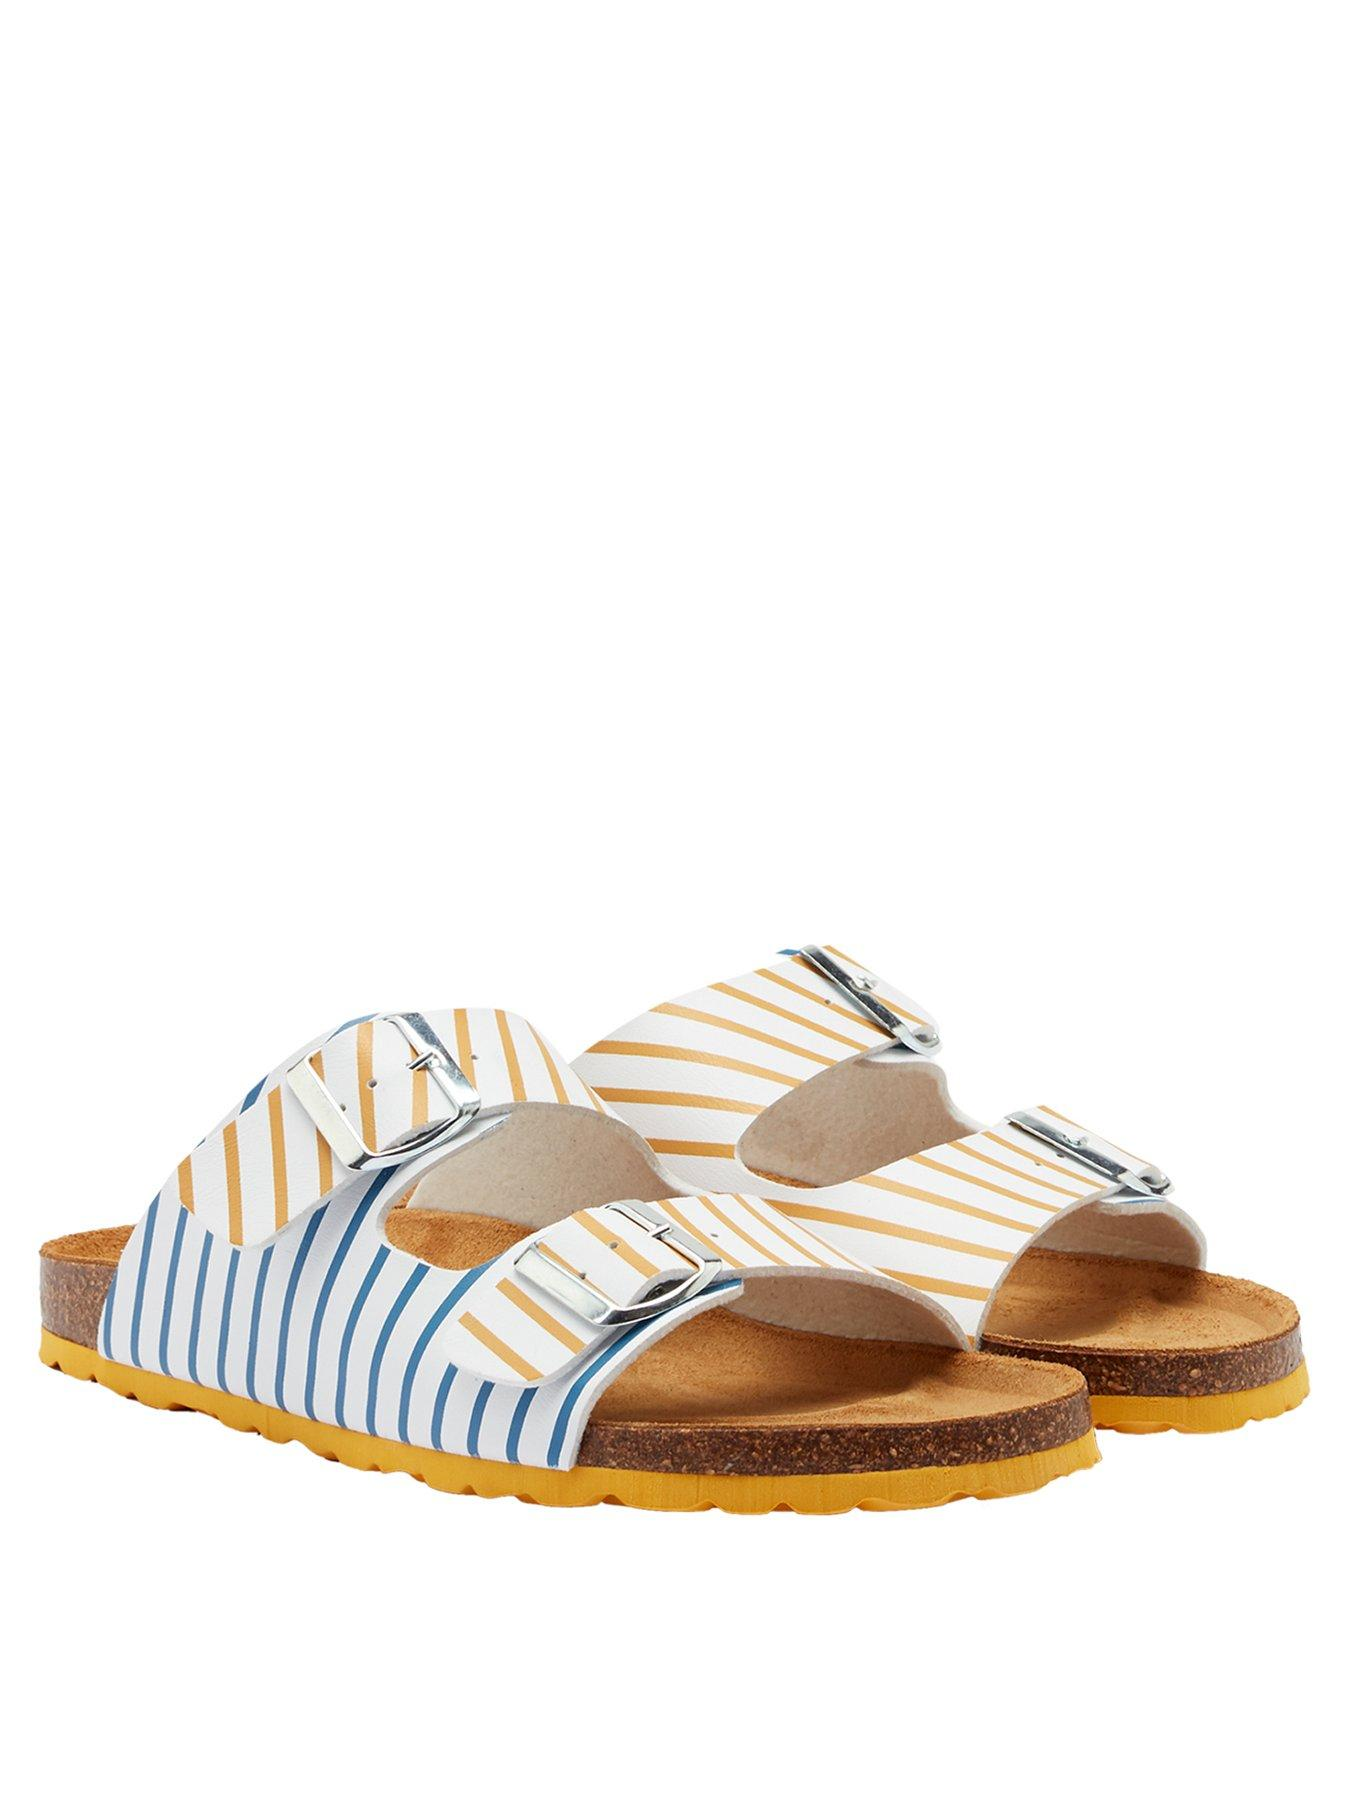 Striped Sandals and Beach Shoes for Women Joules Flip Flops with Moulded Footbed **FREE UK Shipping**